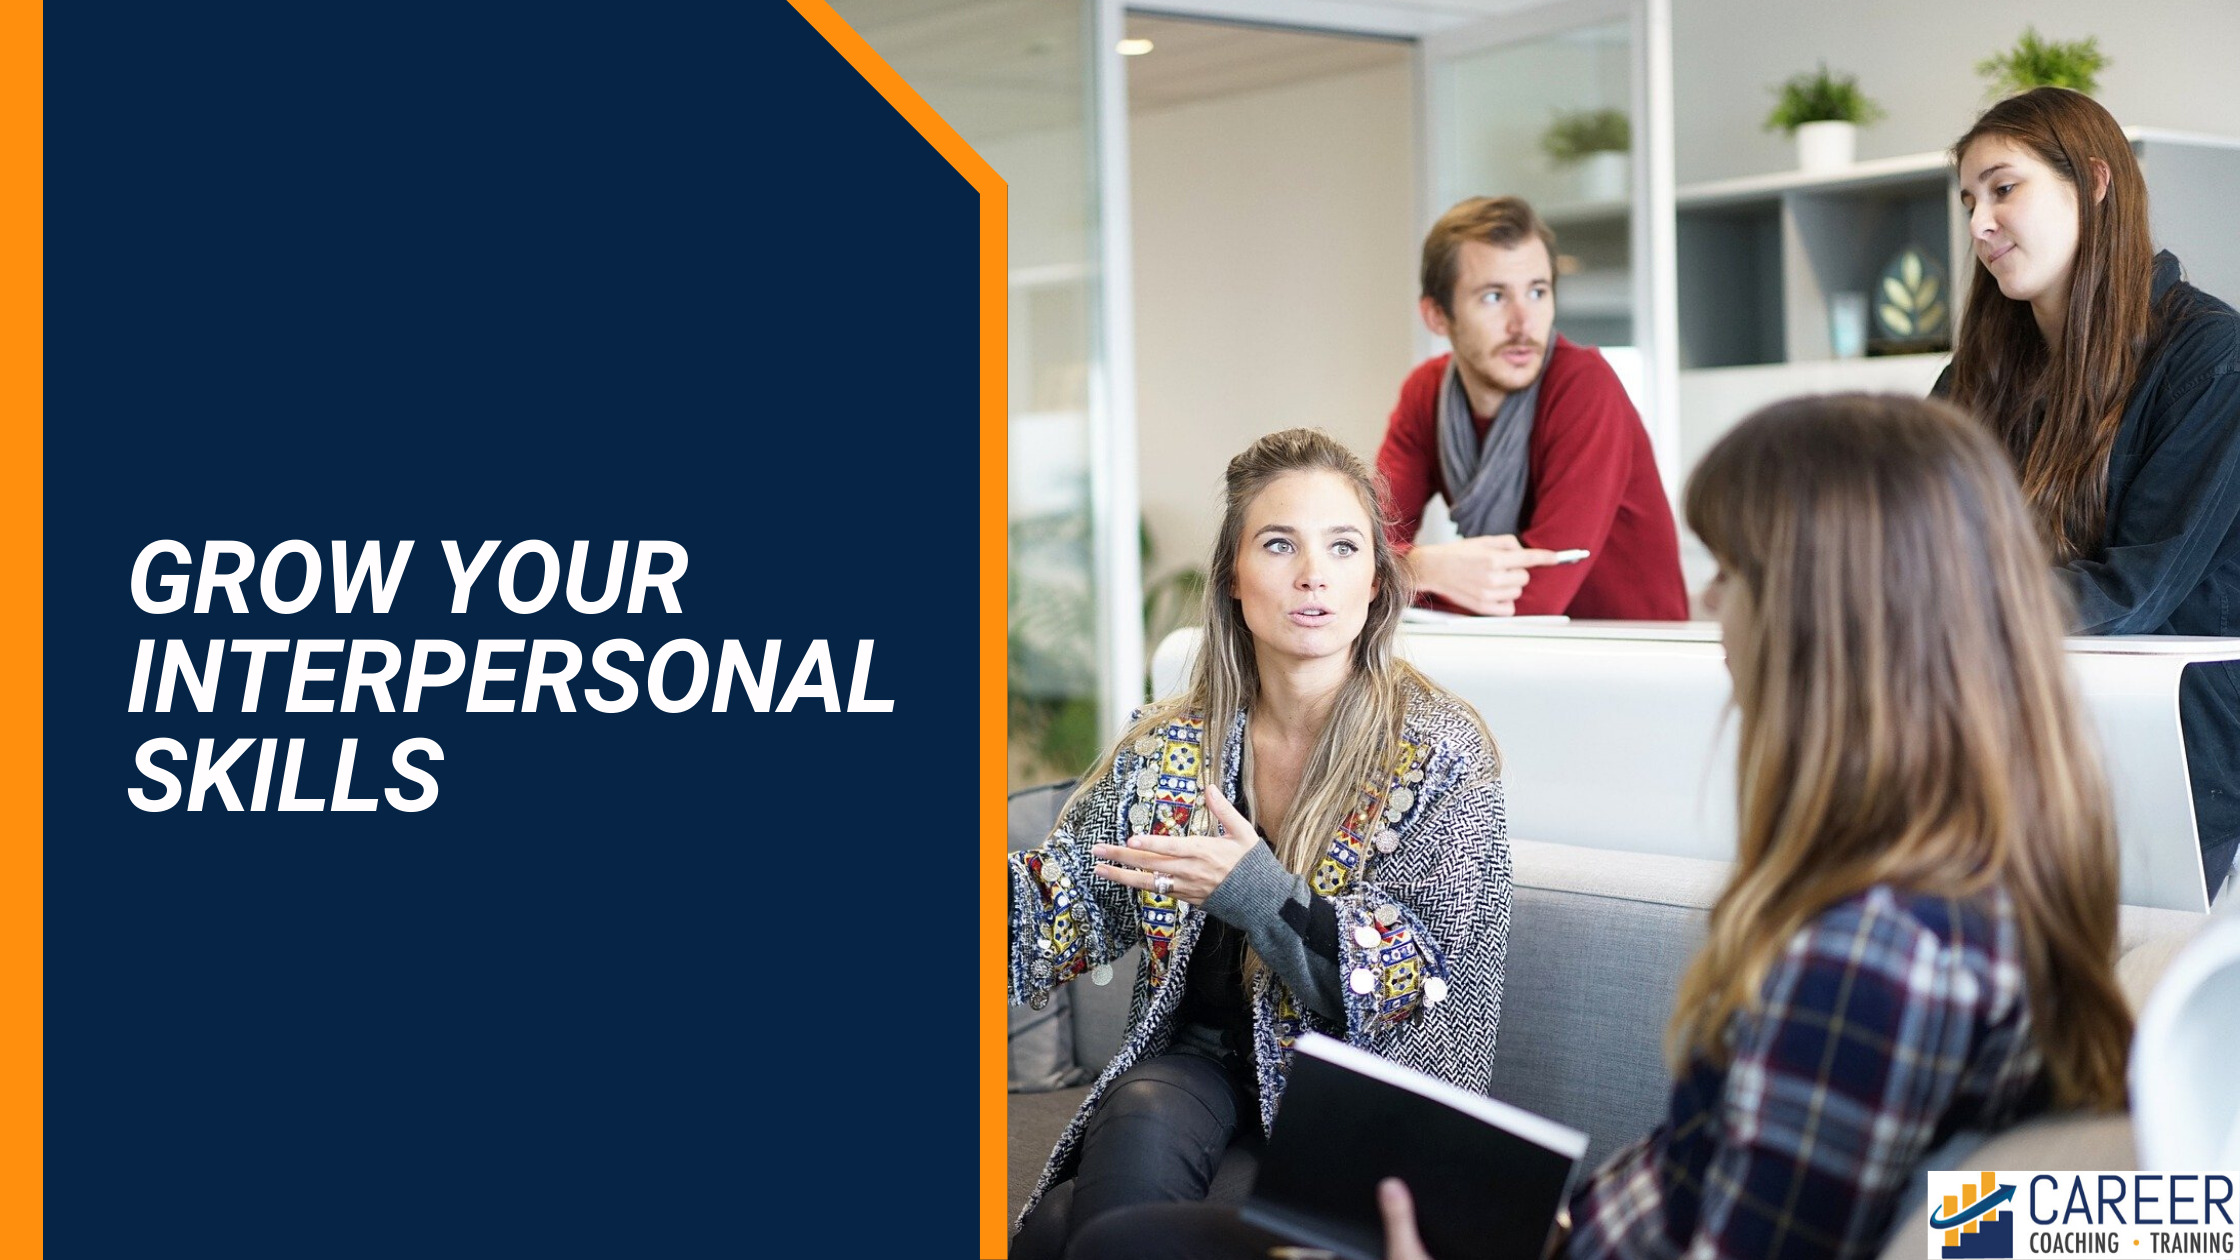 Grow Your Interpersonal Skills